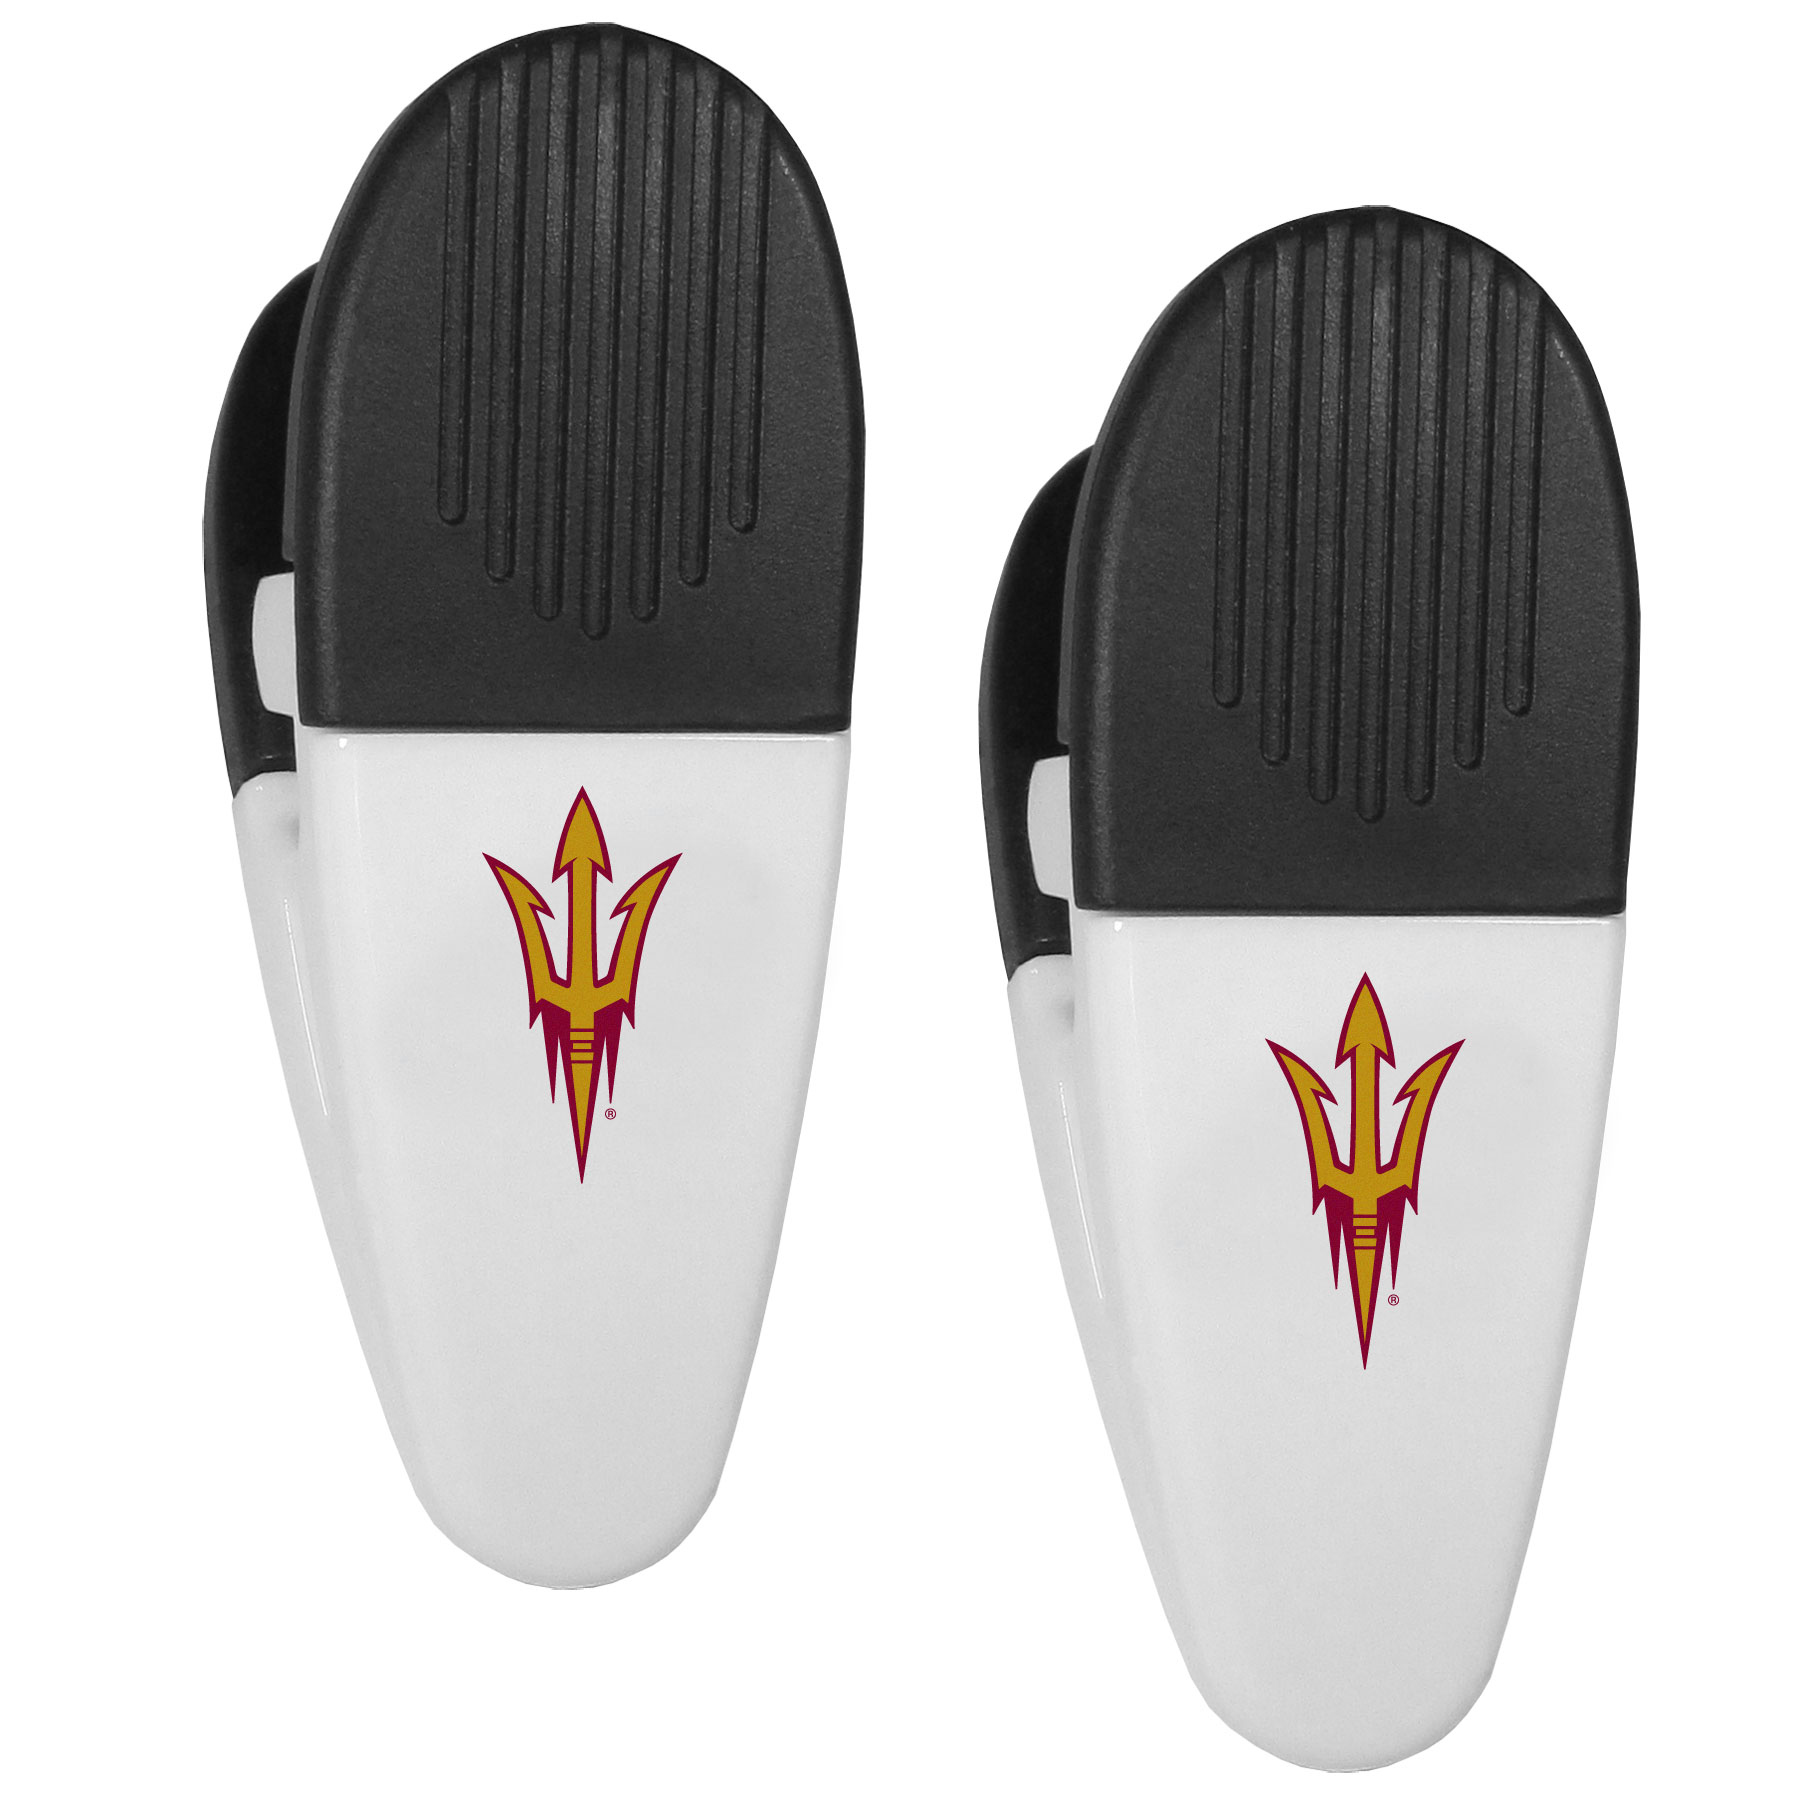 Arizona St. Sun Devils Mini Chip Clip Magnets, 2 pk - Our Arizona St. Sun Devils chip clip magnets feature a crisp team logo on the front of the clip. The clip is perfect for sealing chips for freshness and with the powerful magnet on the back it can be used to attach notes to the fridge or hanging your child's artwork. Set of 2 magnet clips, each clip is 3.5 inches tall and 1.25 inch wide.